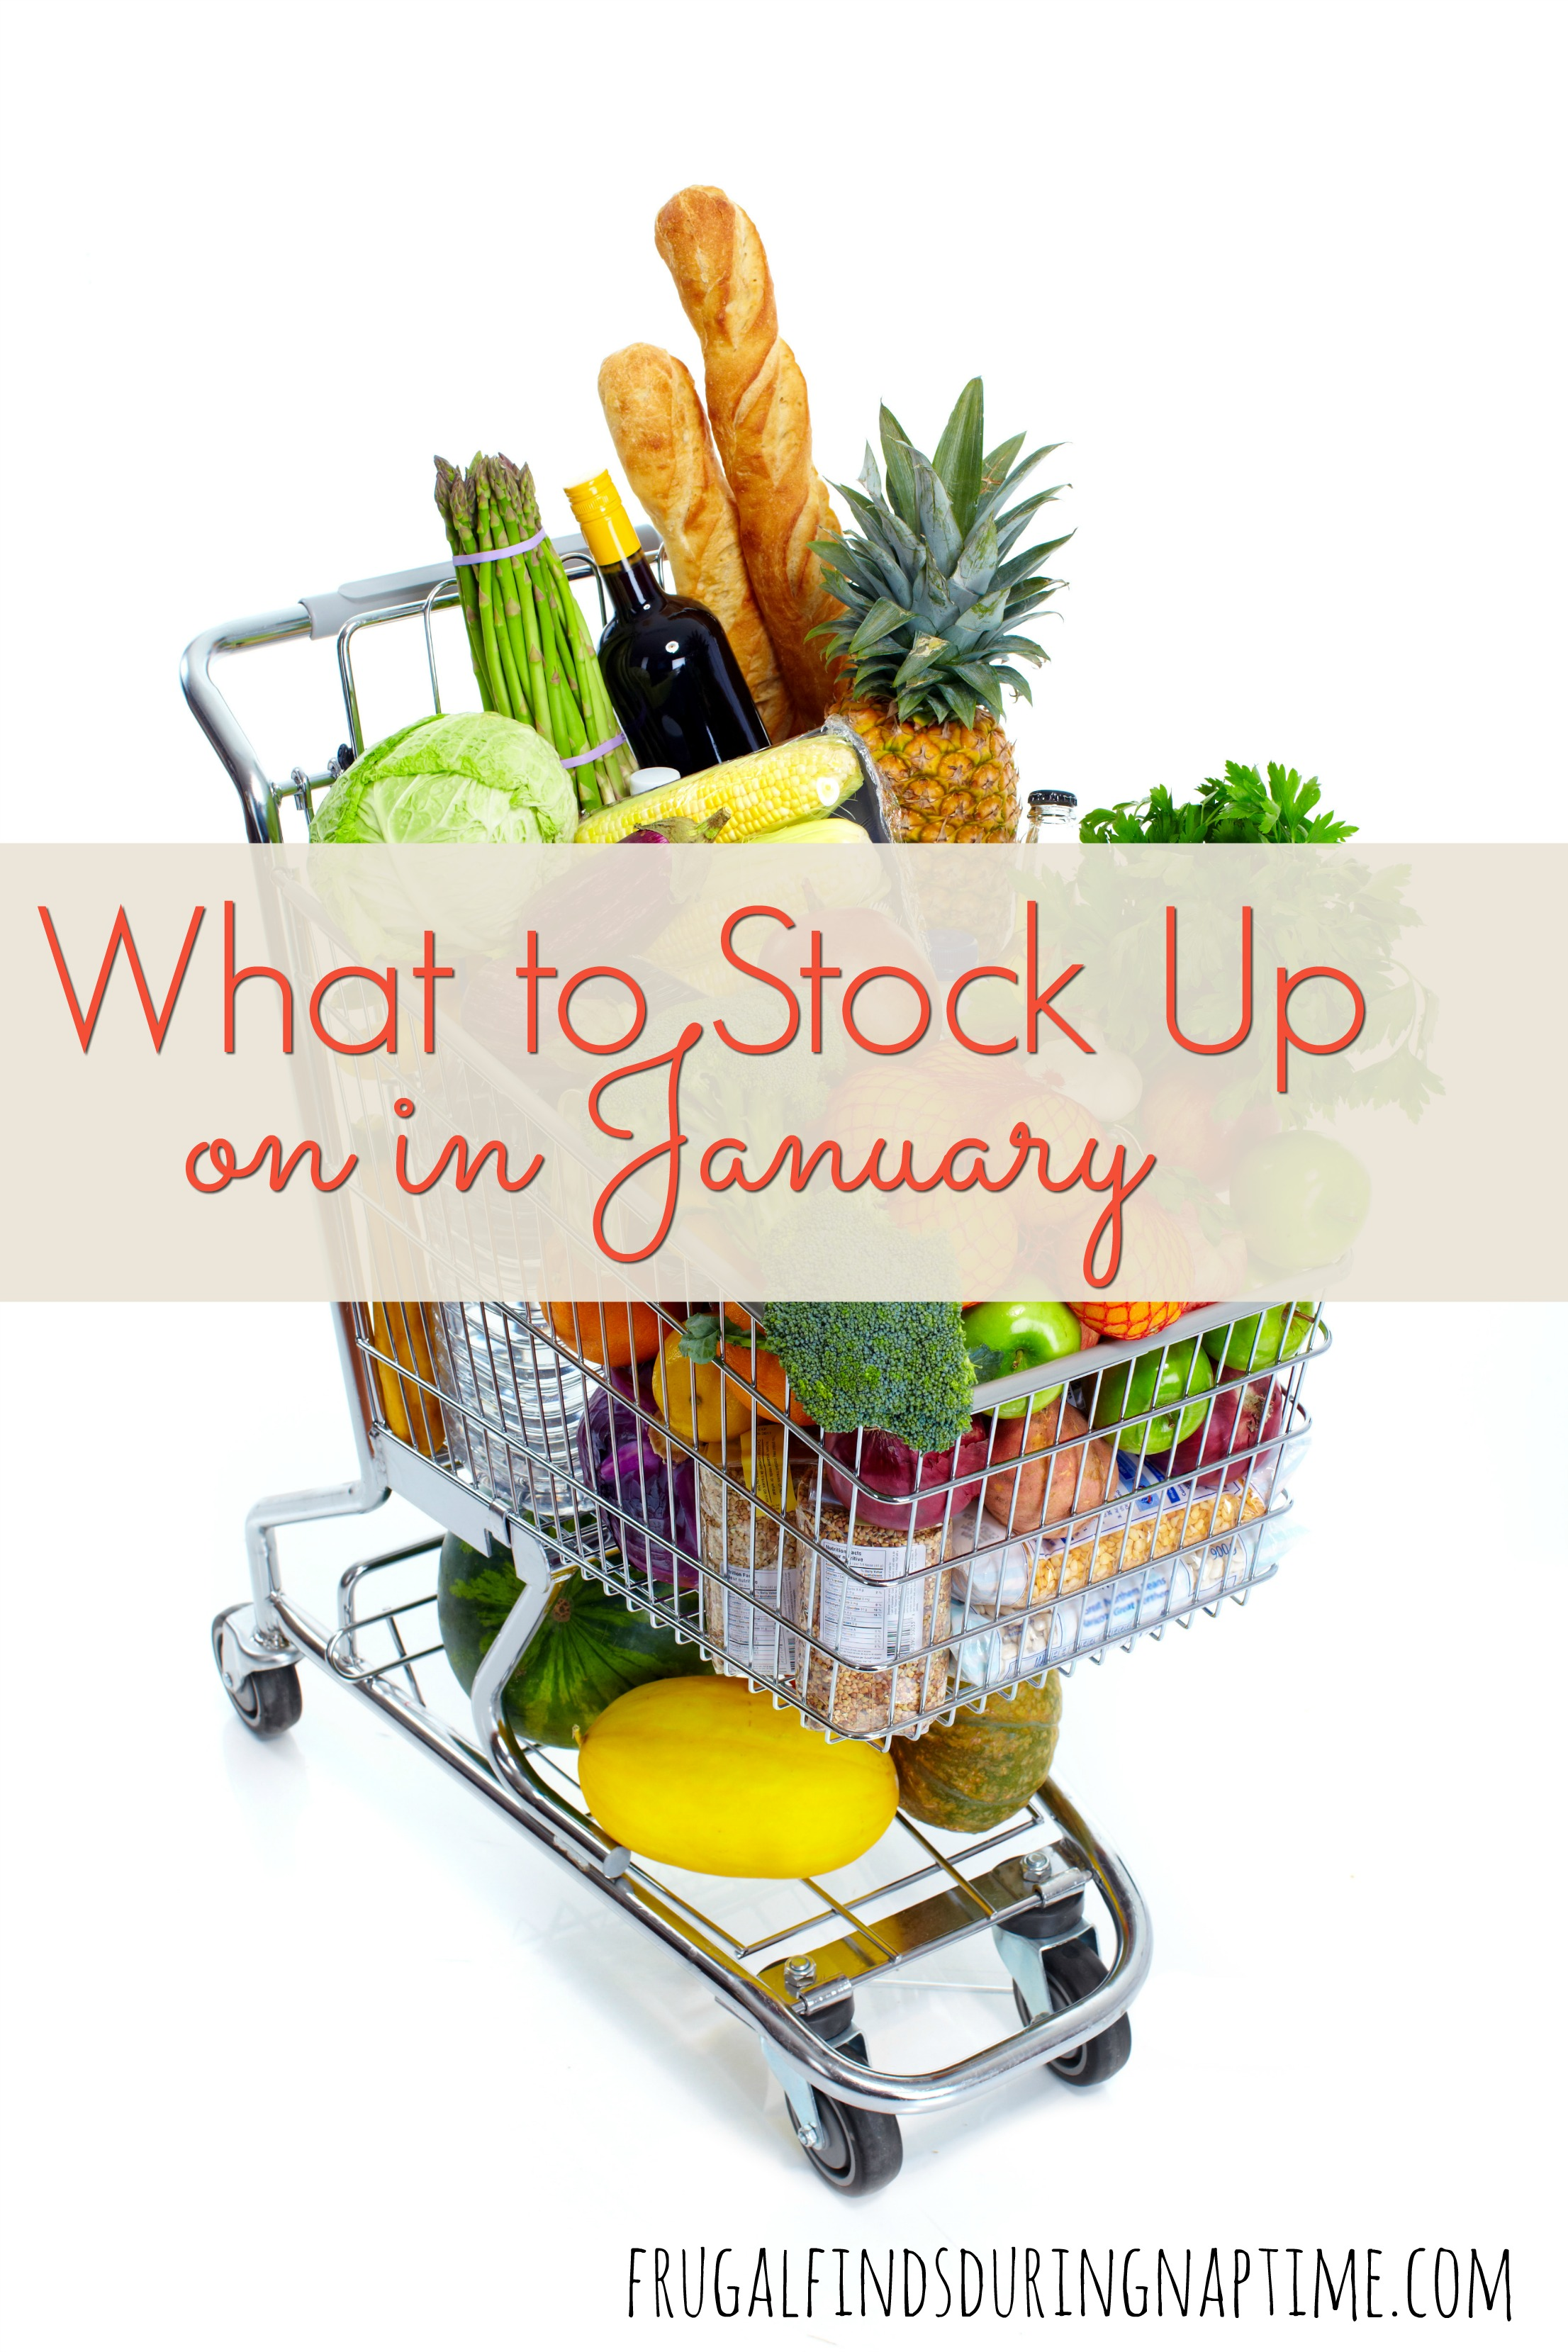 Stock up on these items in January so you won't have to pay full price later!